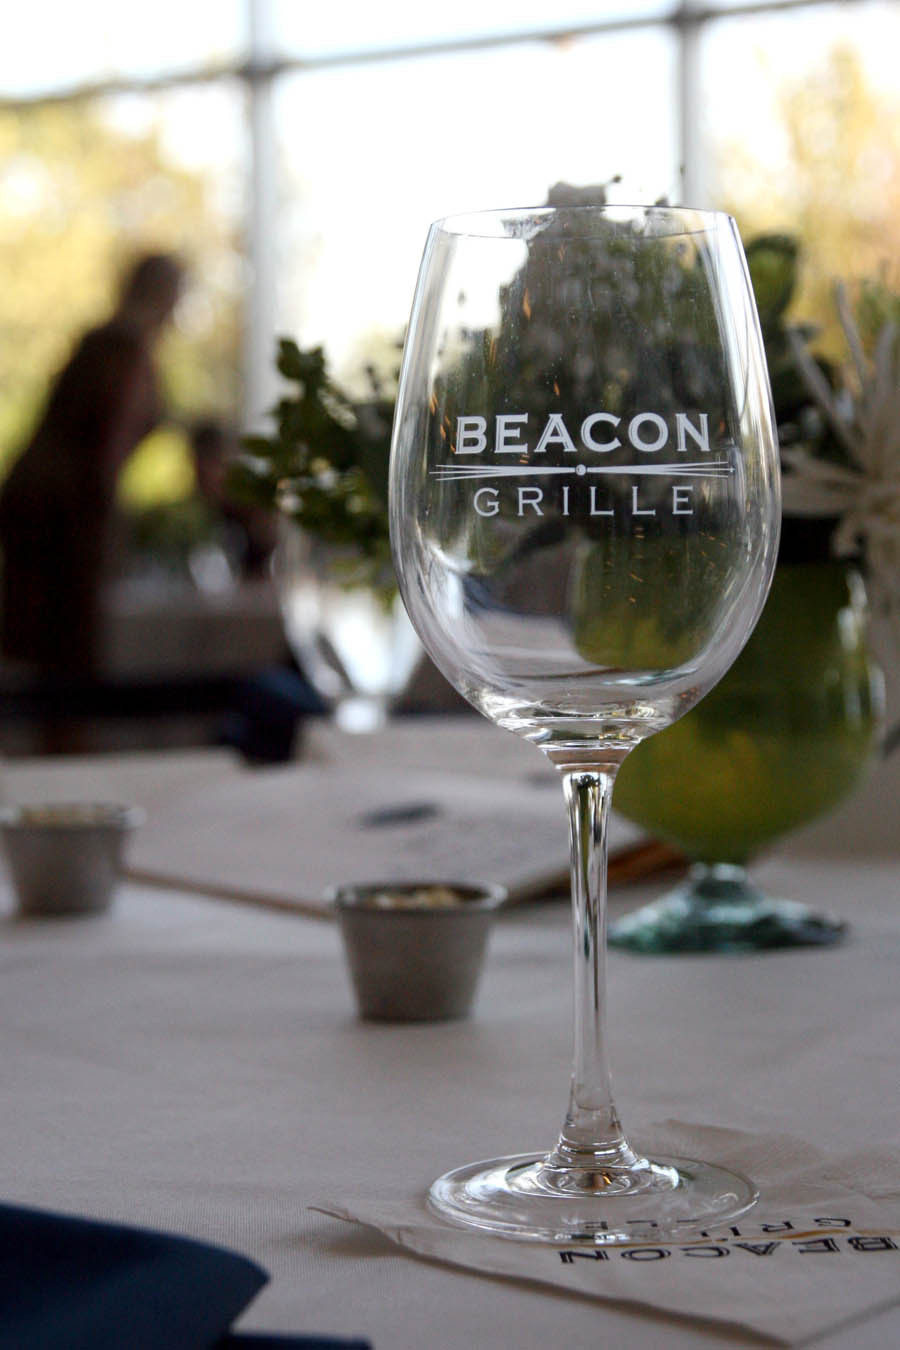 Beacon Grille wine glass